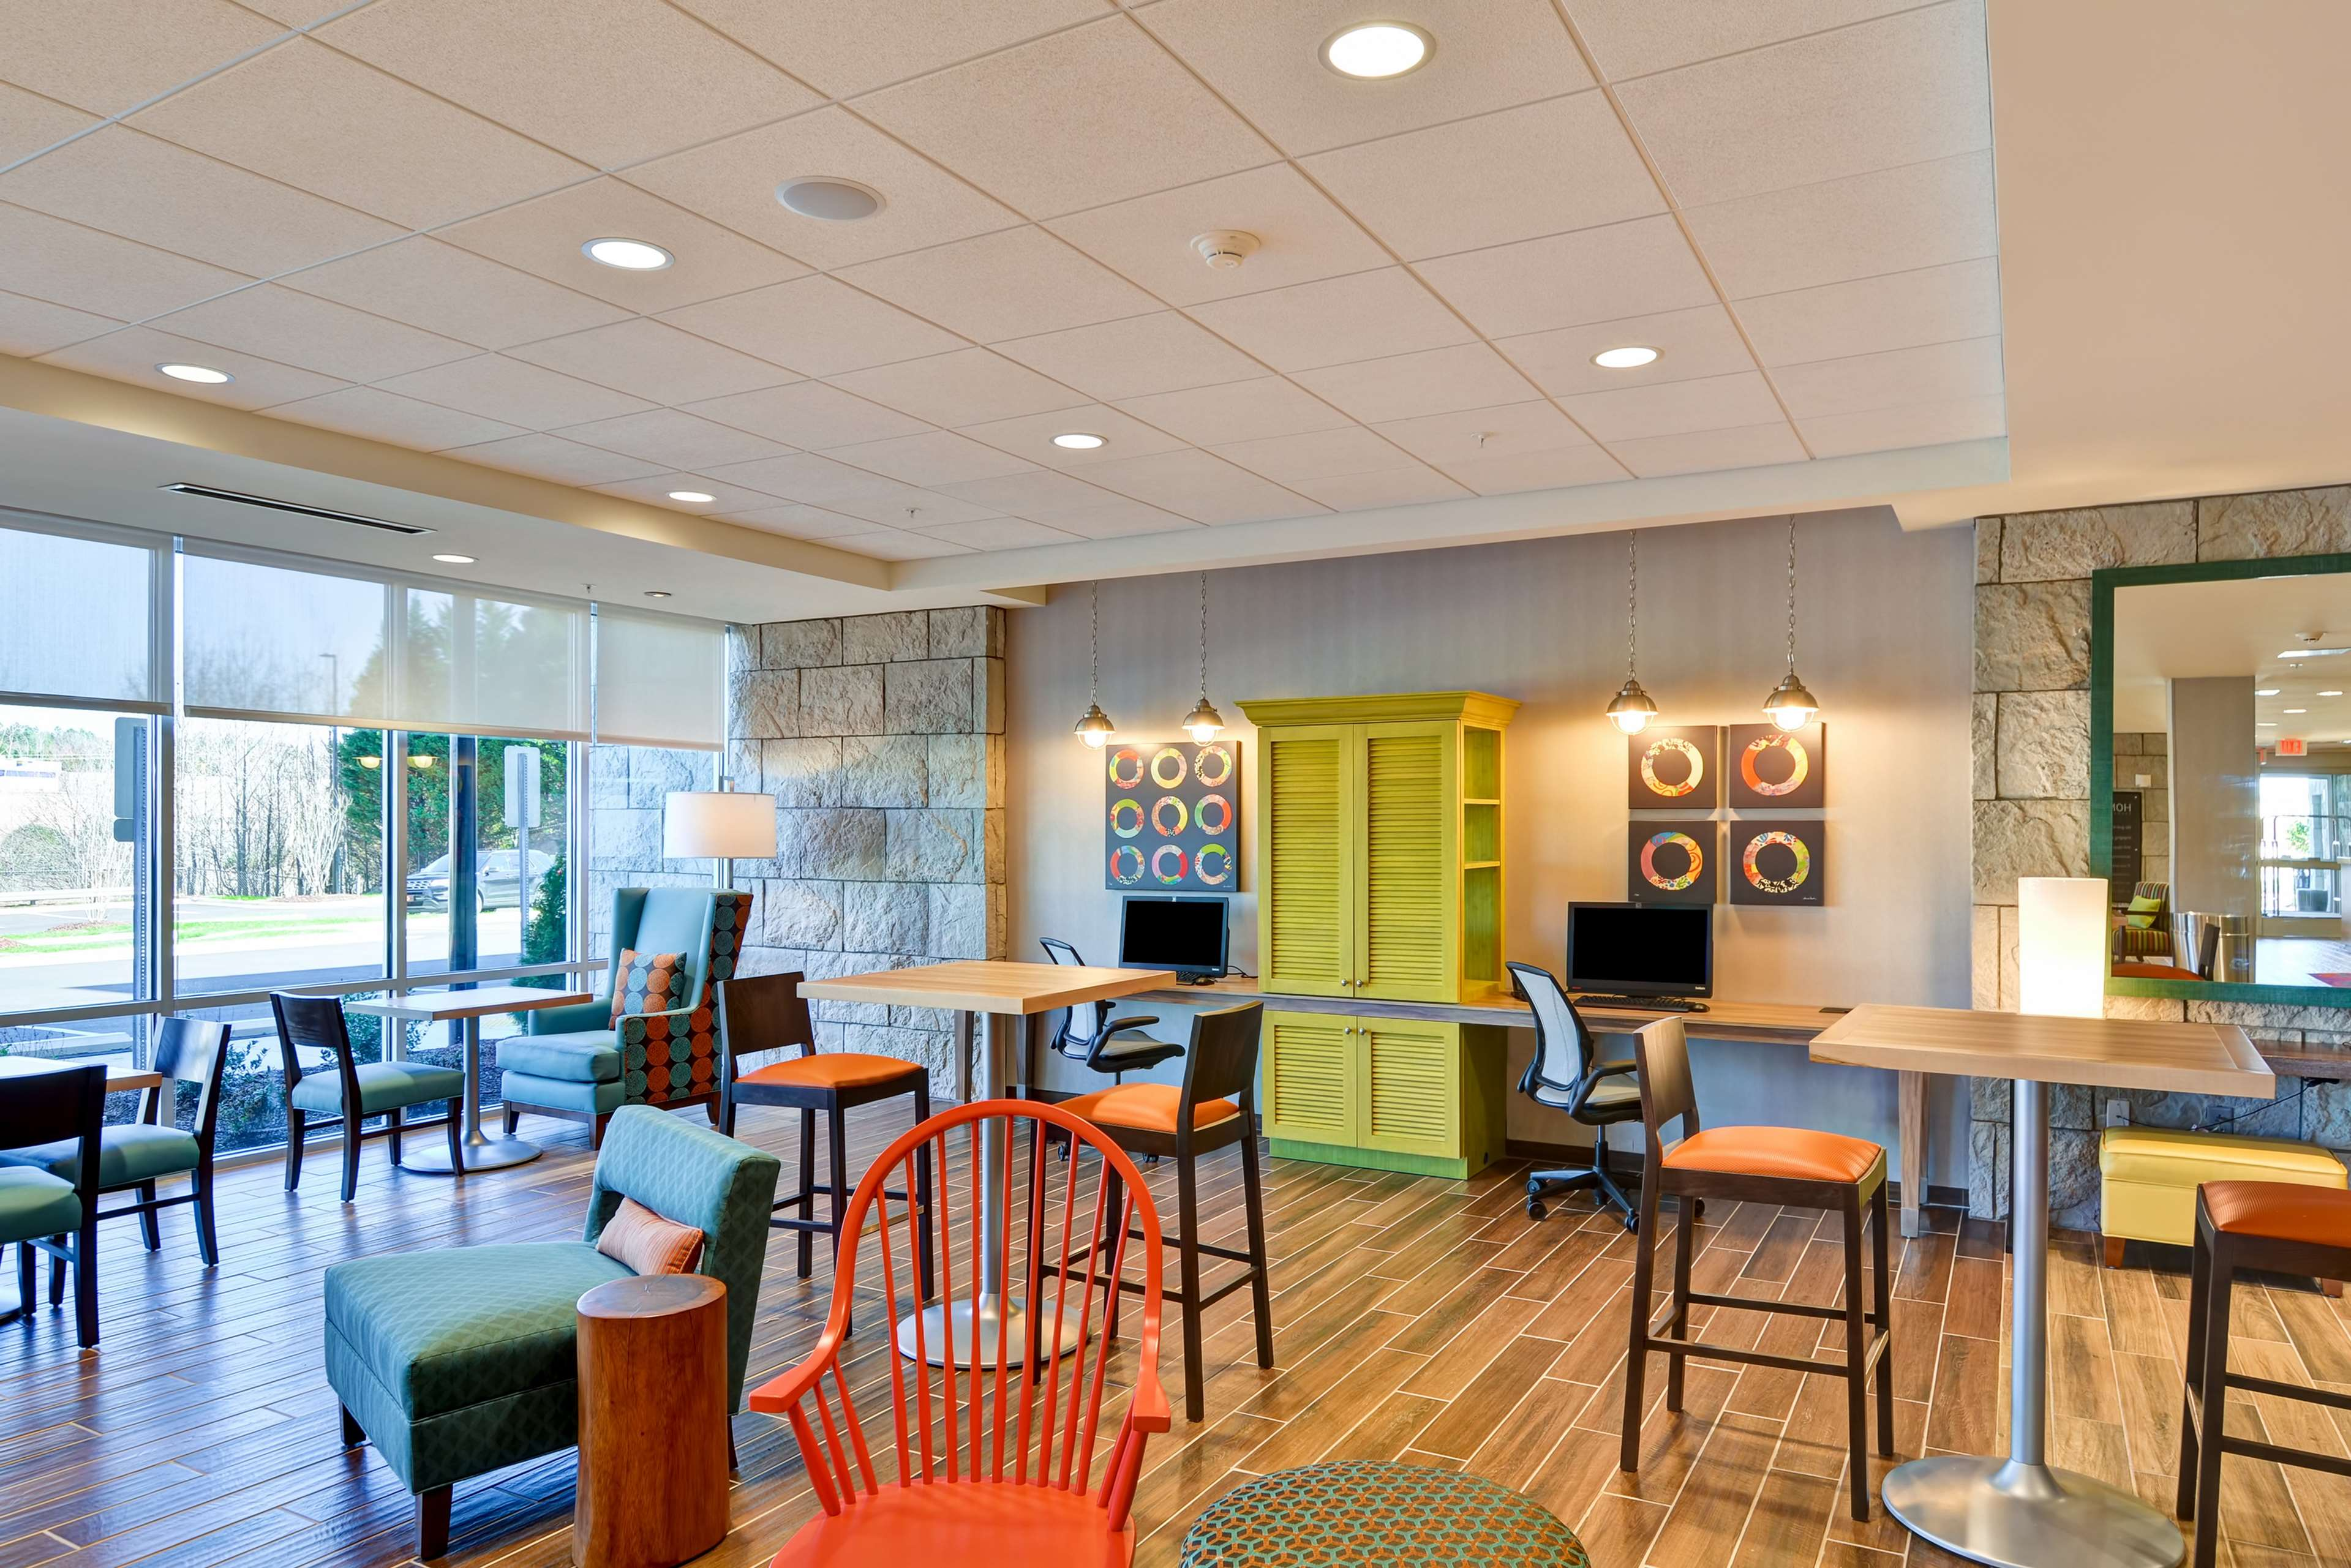 Home2 Suites by Hilton Winston-Salem Hanes Mall image 9